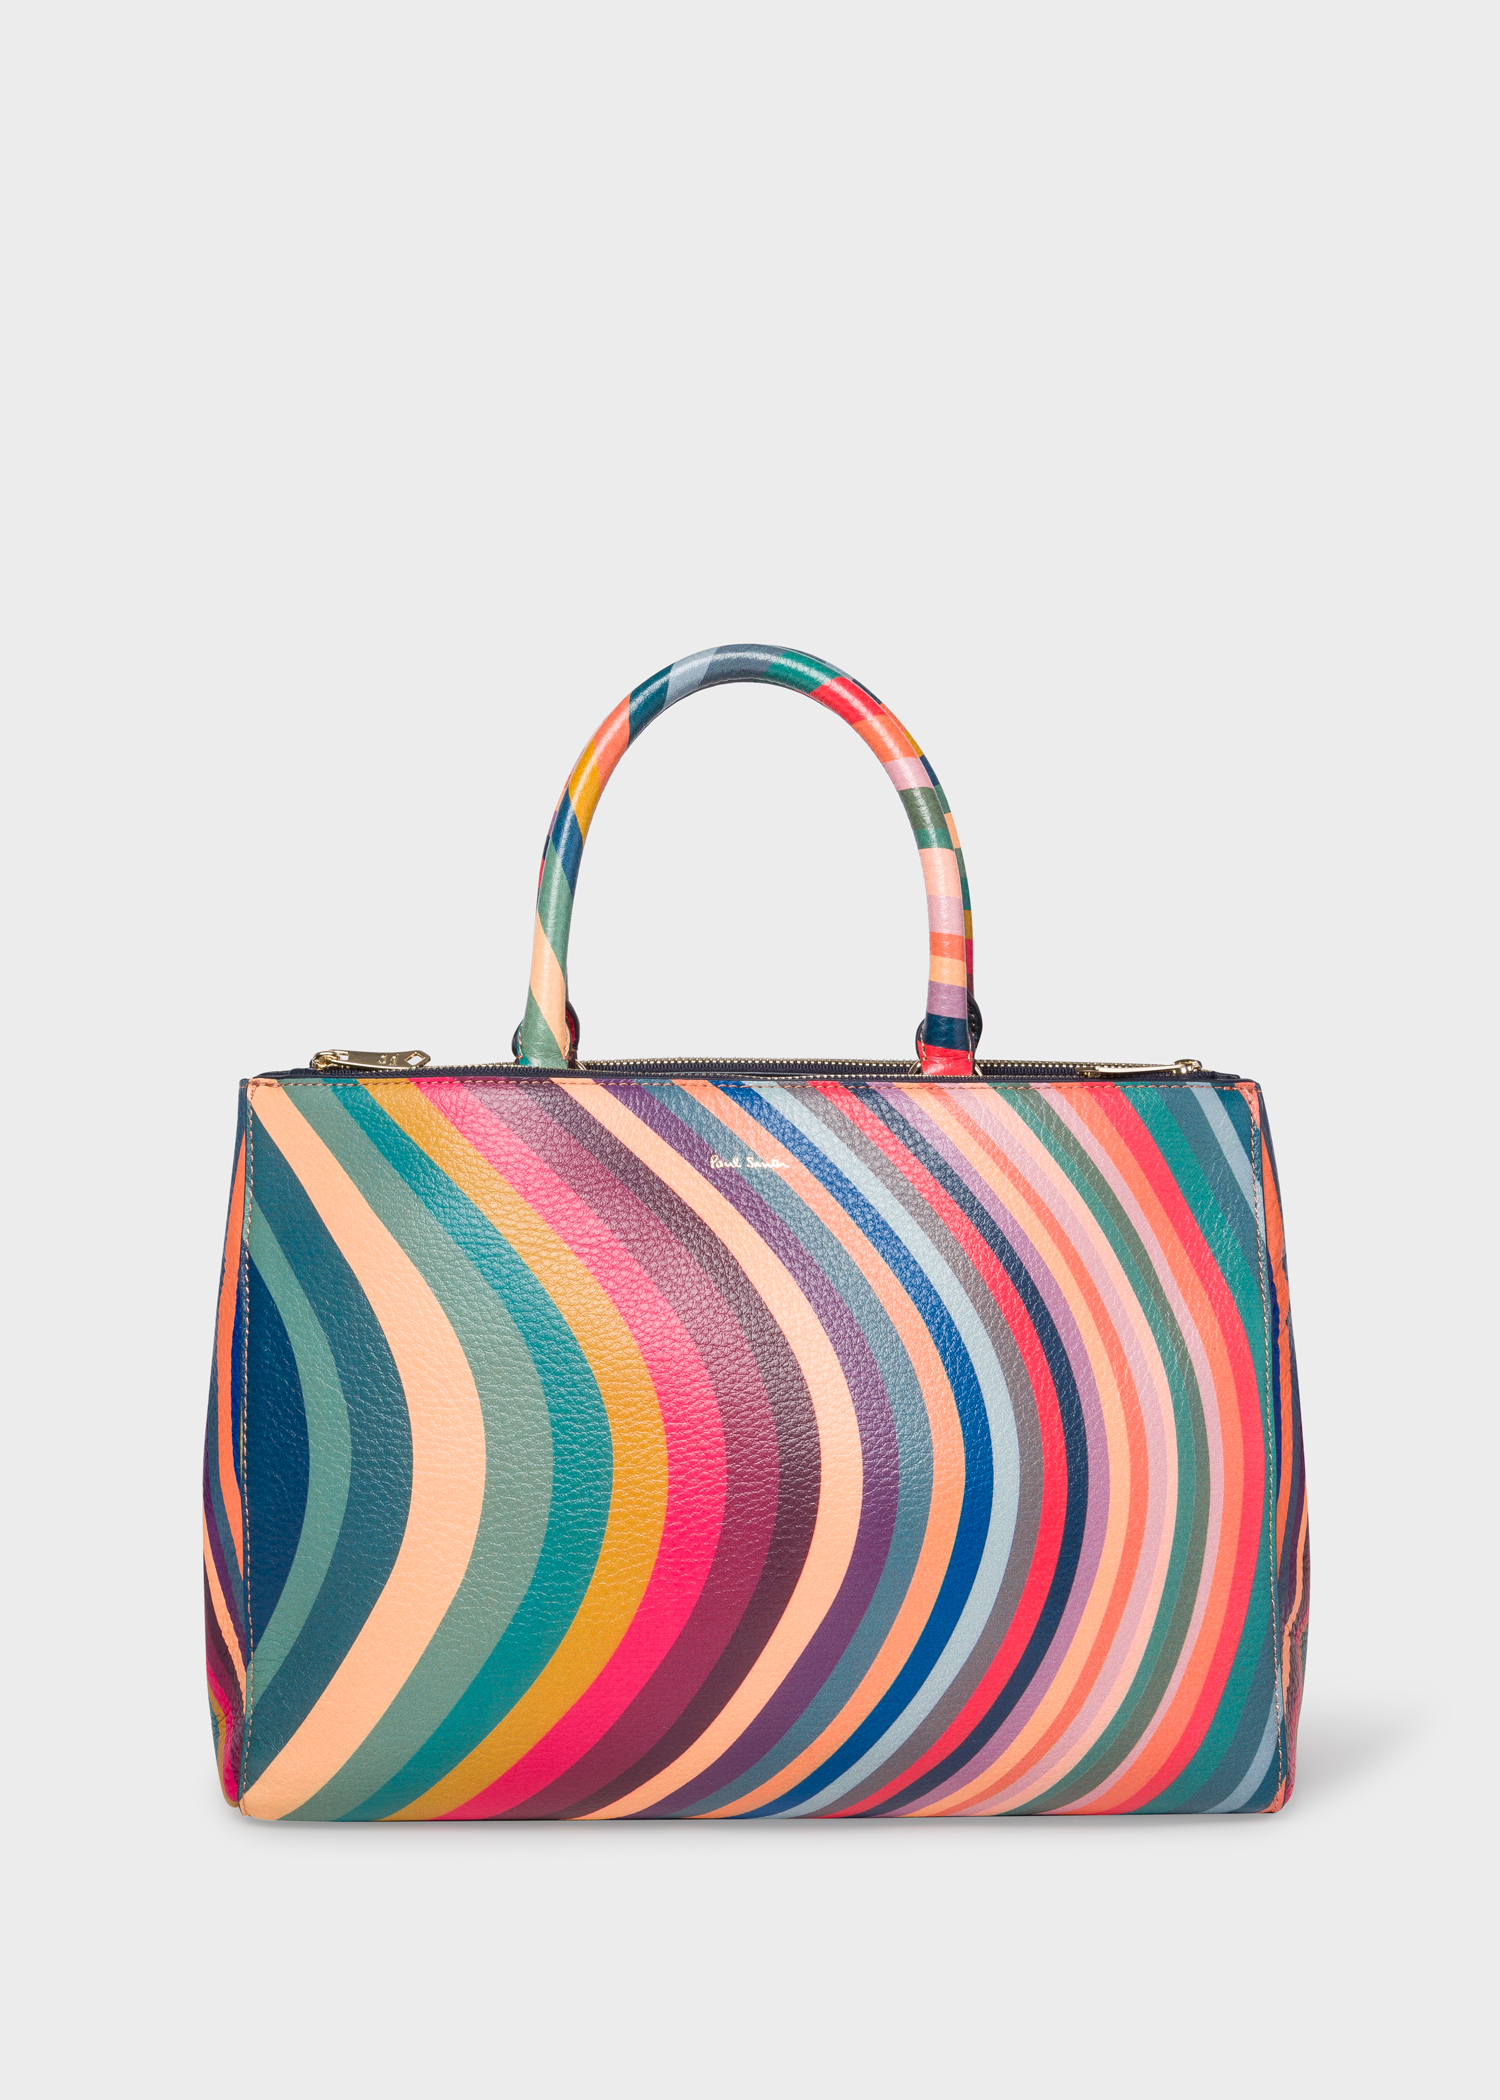 d03a35f0ddaa Paul Smith Swirl Print Handbags - Handbag Photos Eleventyone.Org